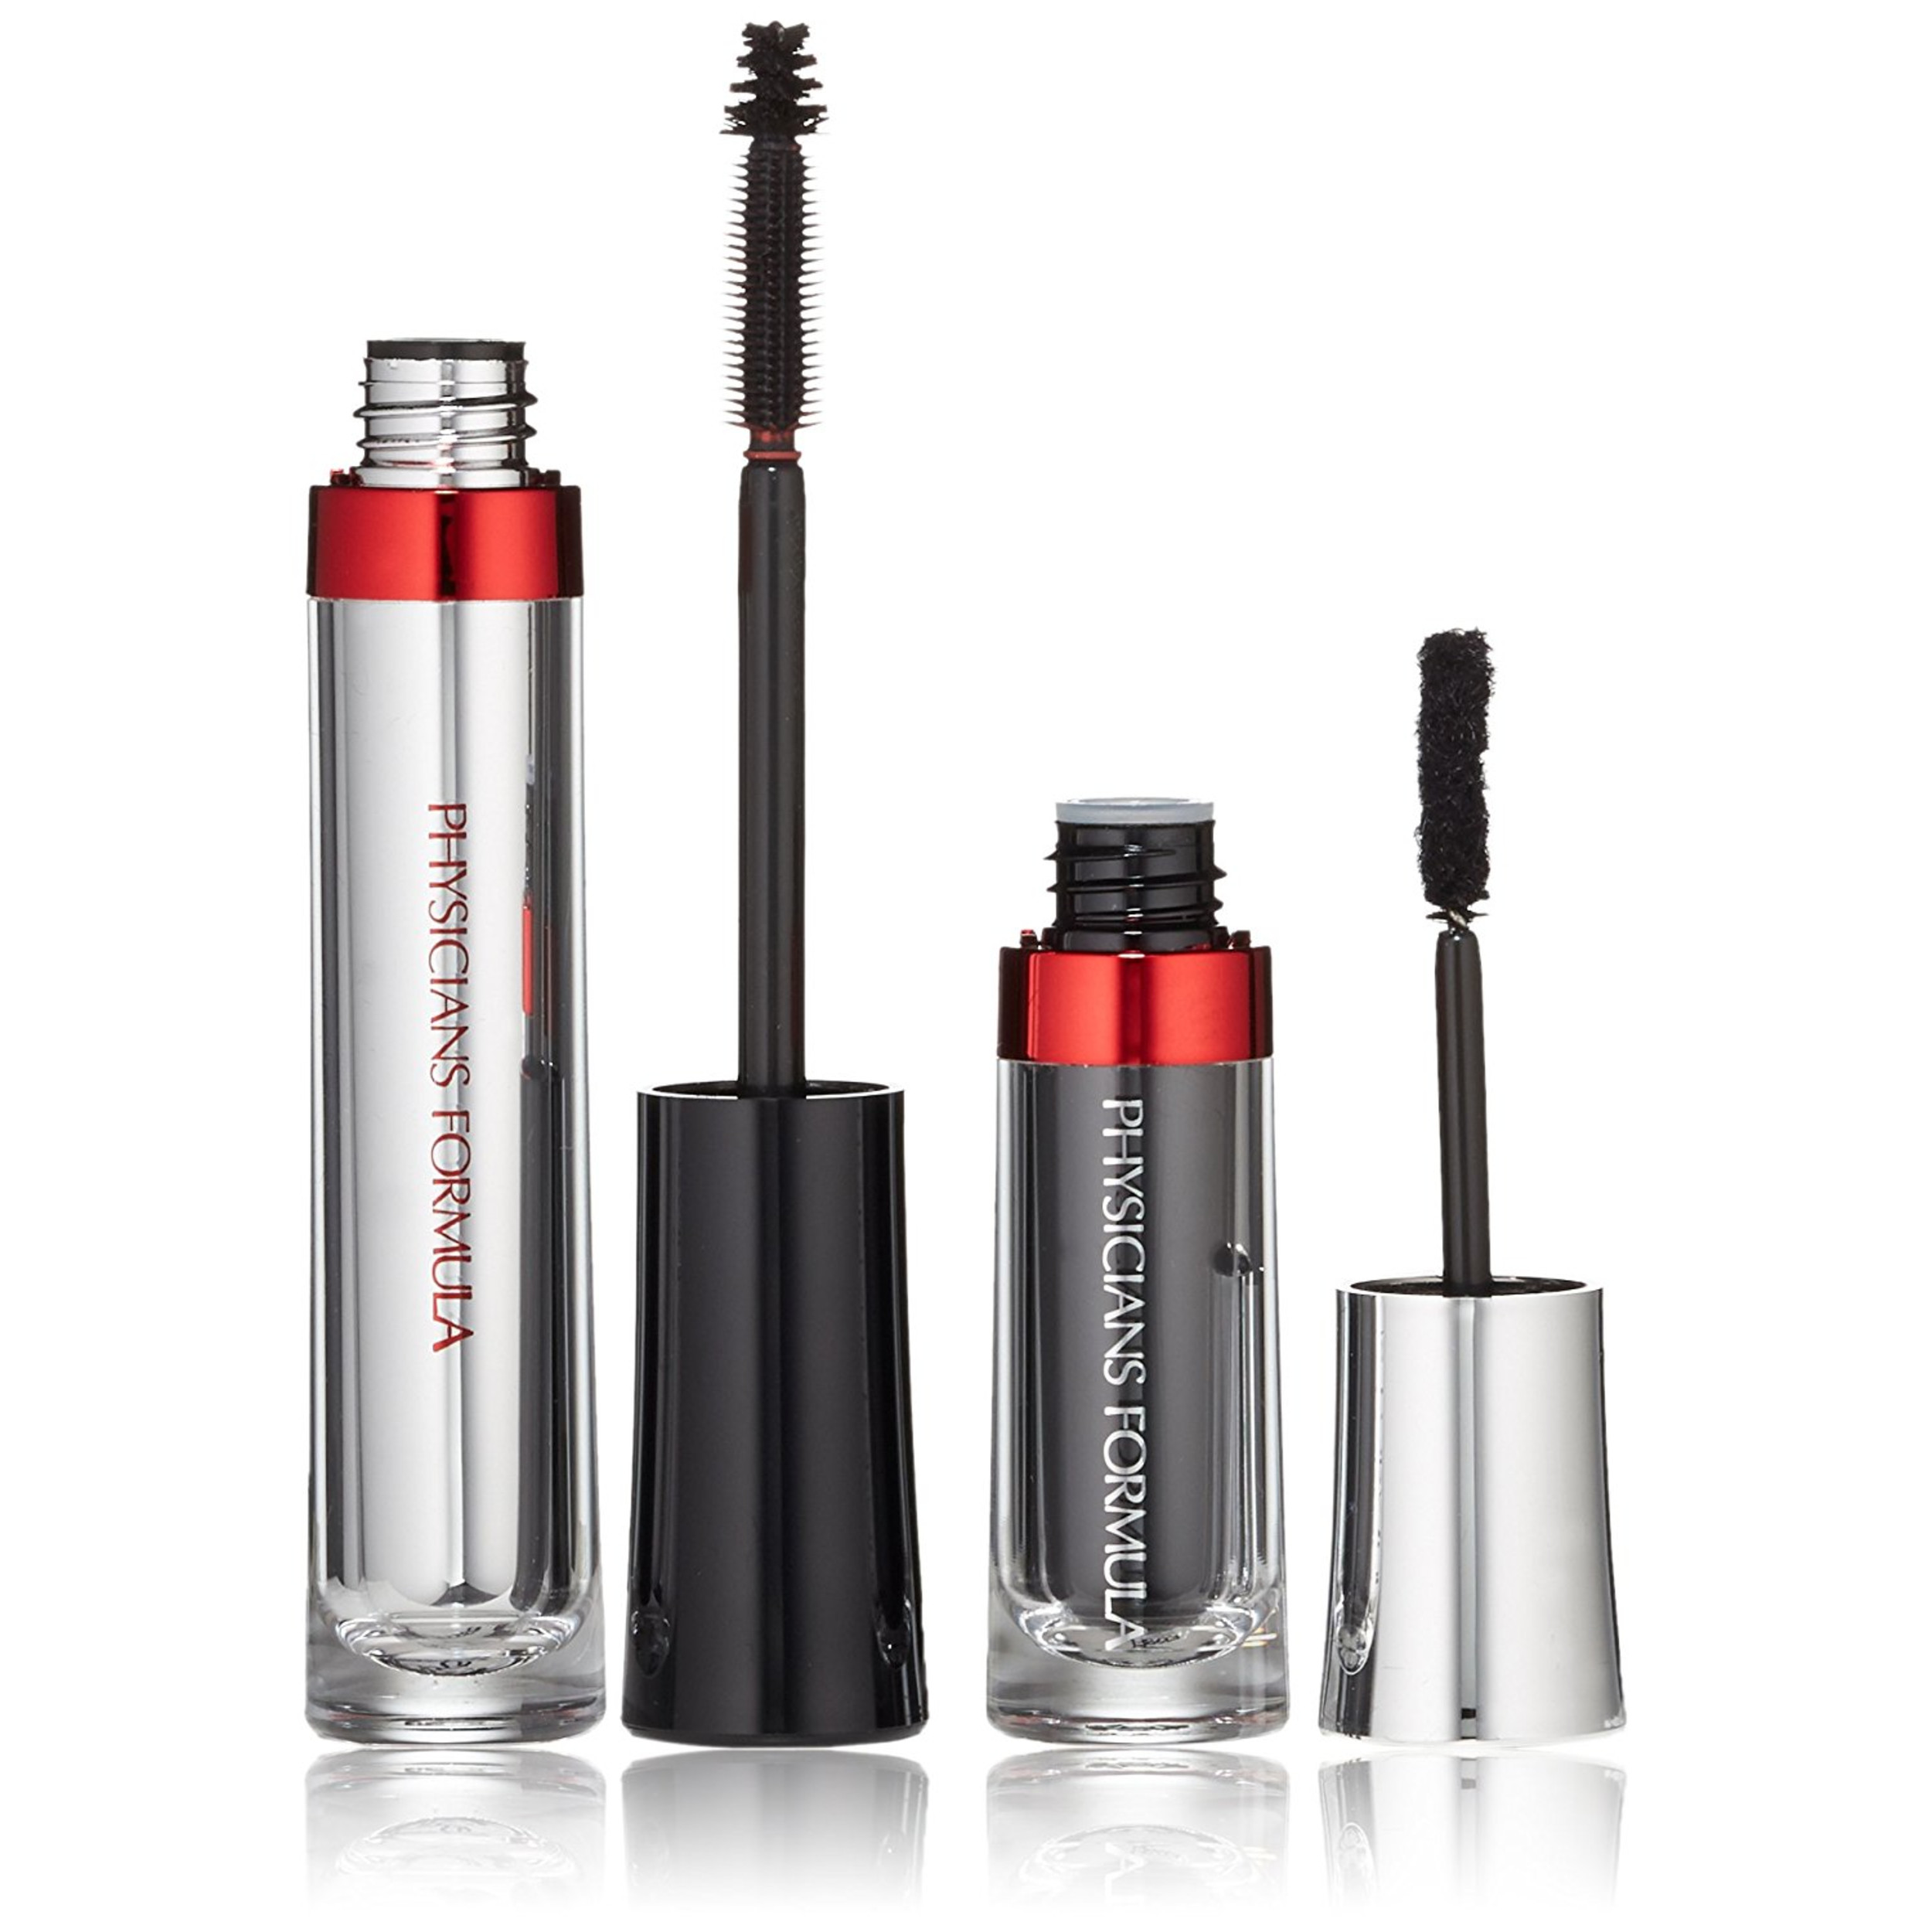 cffd4840396 Physicians Formula Eye Booster™ Instant Doll Lash Extension Kit, Ultra  Black - Walmart.com